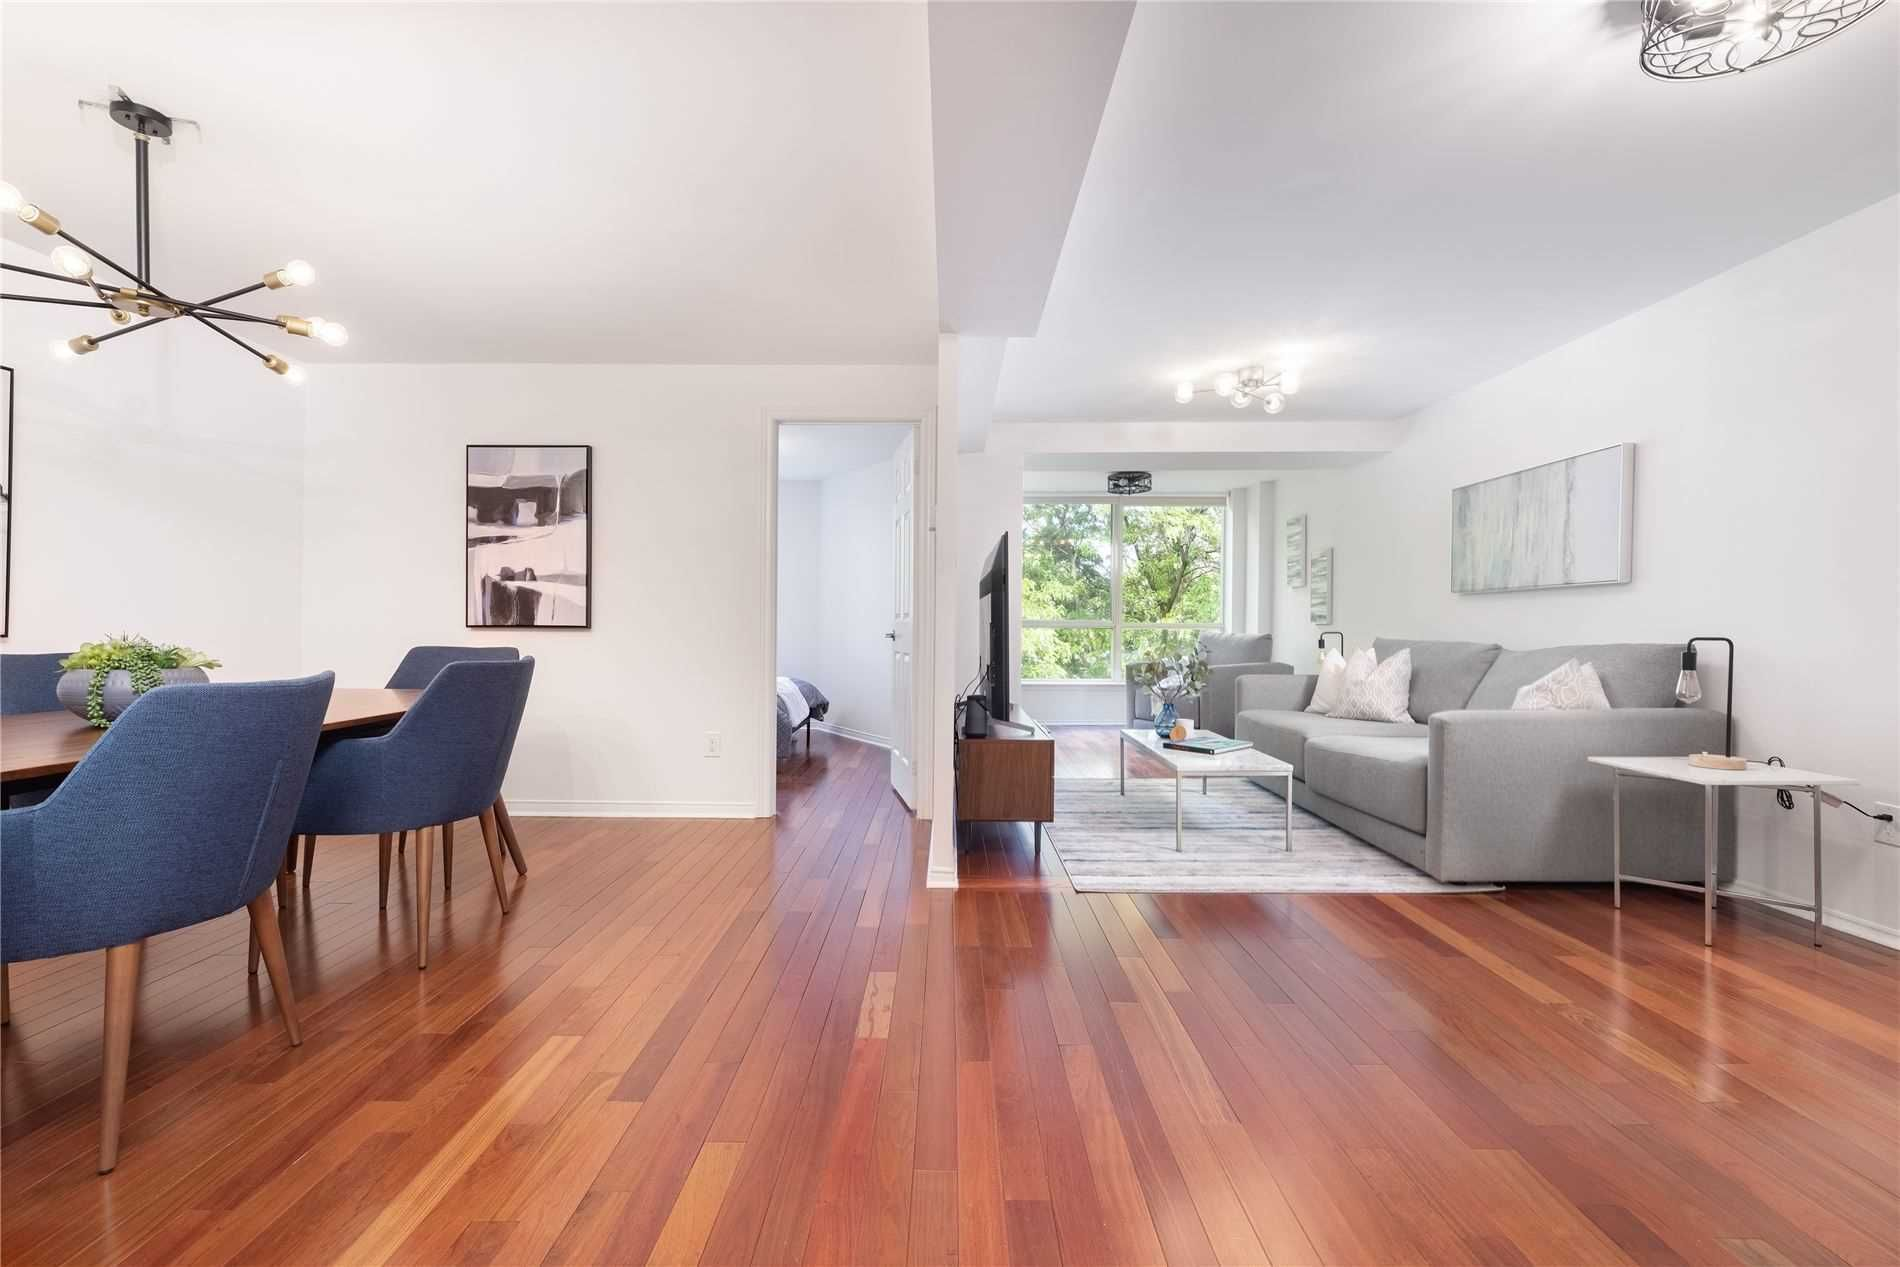 225 Davenport Rd, unit 506 for sale in Toronto - image #1